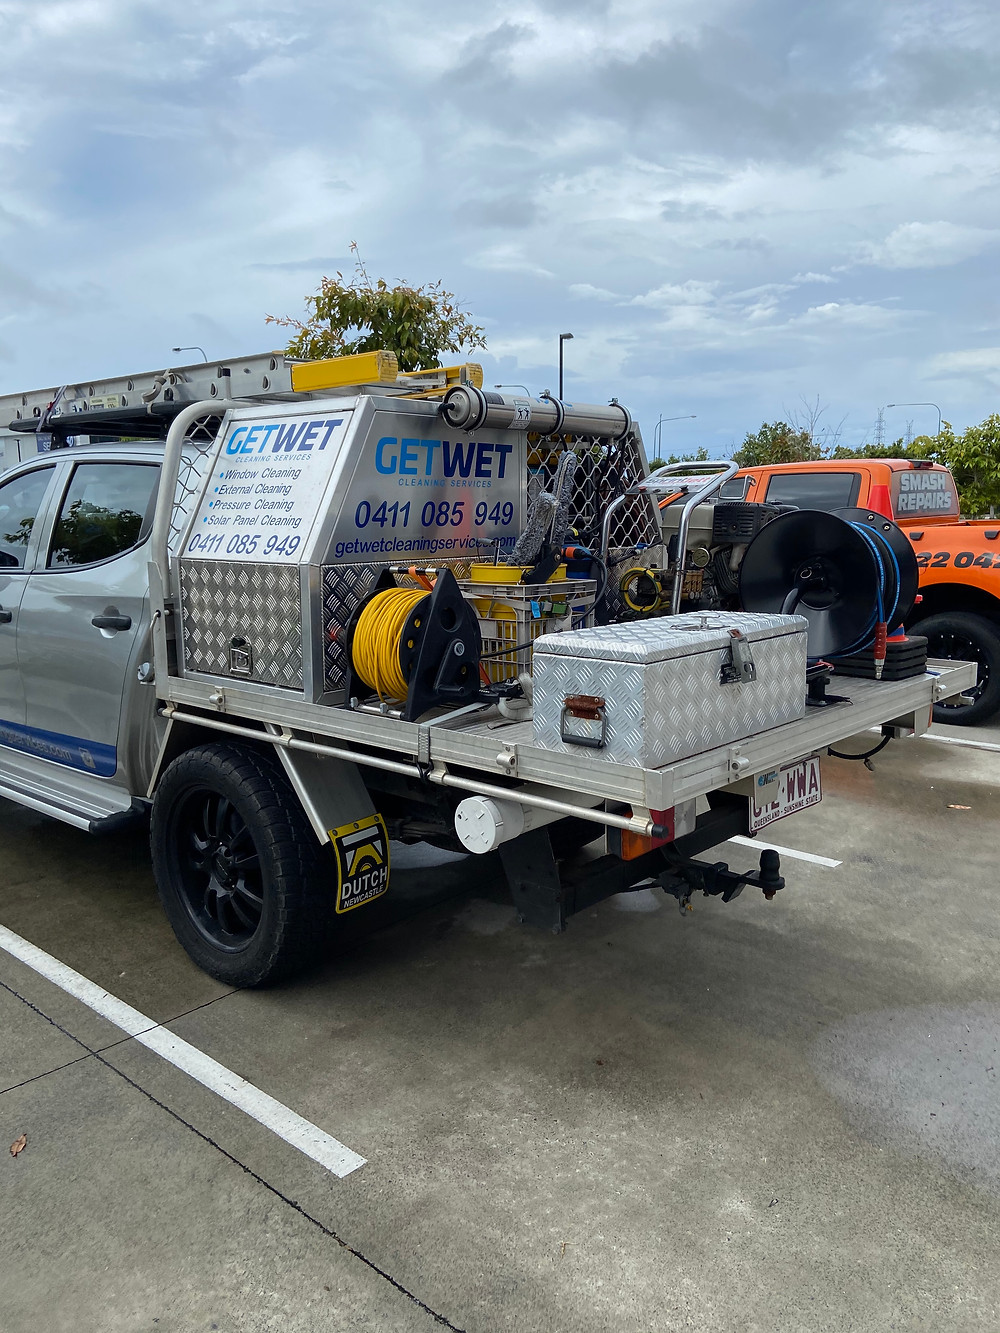 Here is a photo of my ute at bunnings in robina about to get the right chemicals for the house wash we completed. This ute is equips with all the right equipment from window cleaning , pressure cleaning , external cleaning and solar panel cleaning.